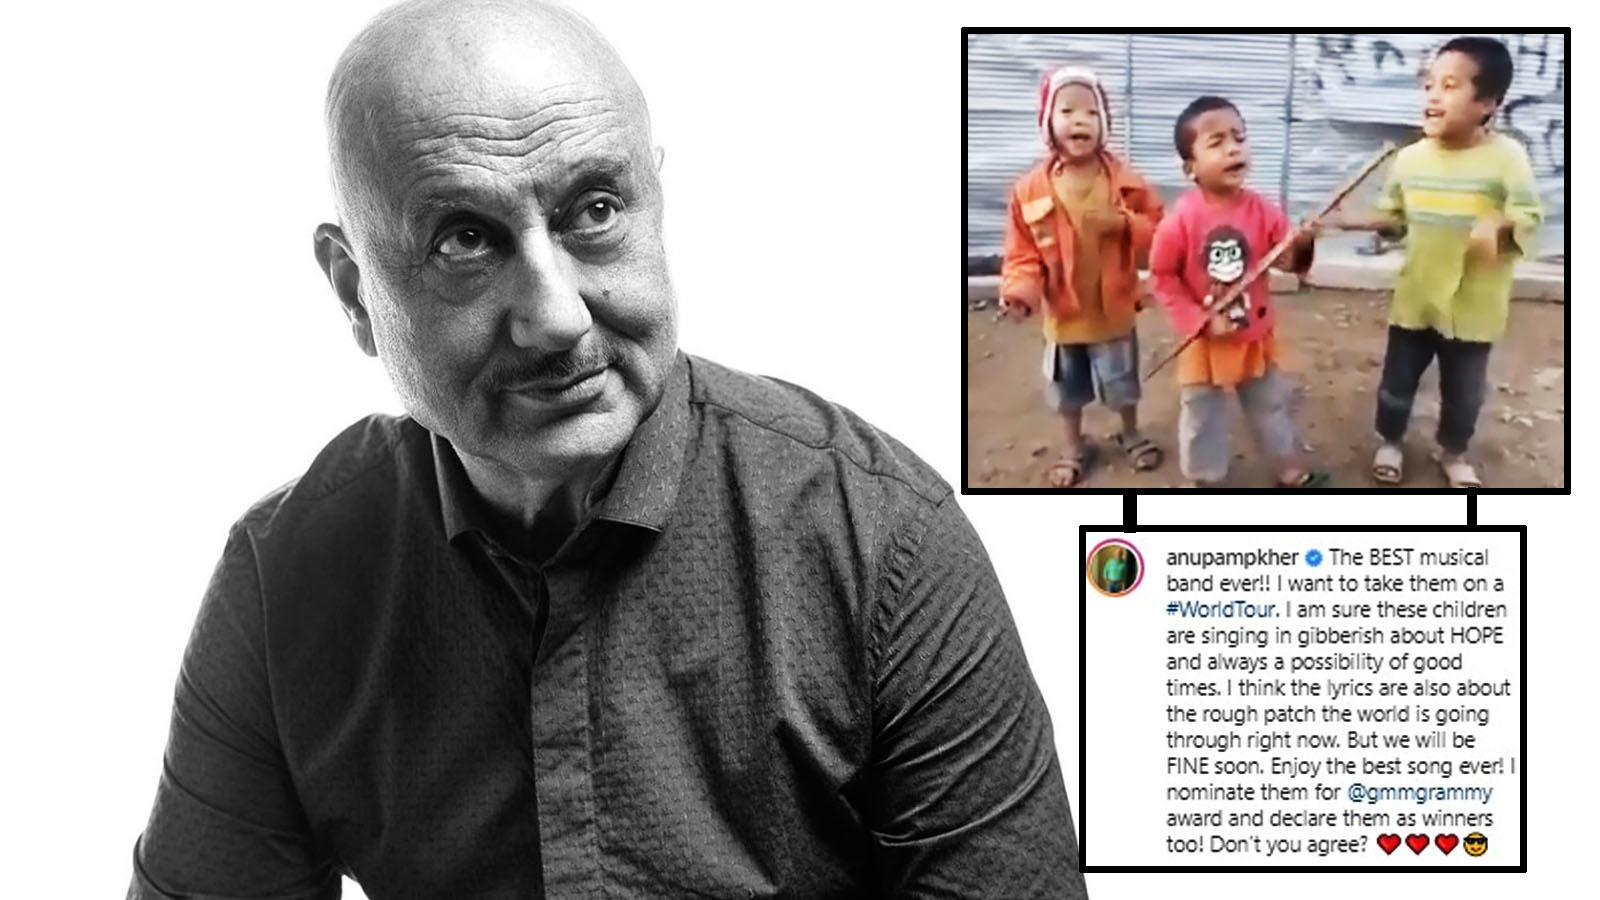 Anupam Kher shares a quirky post while expressing fondness for 'village boy band', says 'I nominate them for grammy' | Hindi Movie News – Bollywood – Times of India